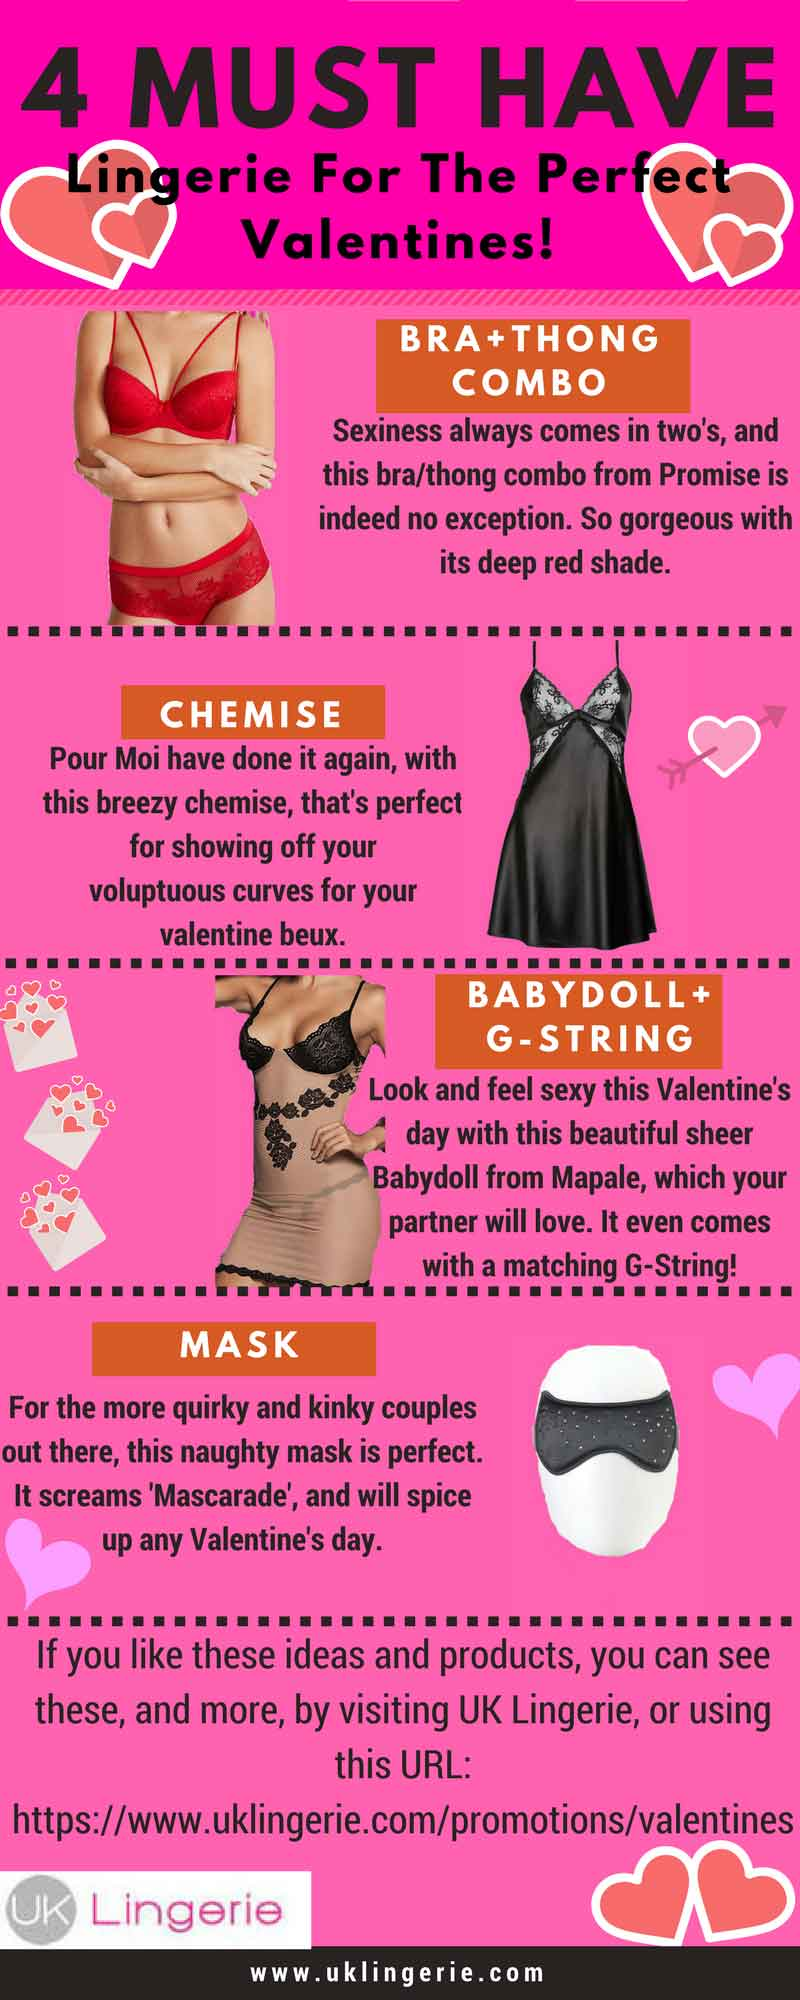 Must Have Lingerie For Valentines Day infographic